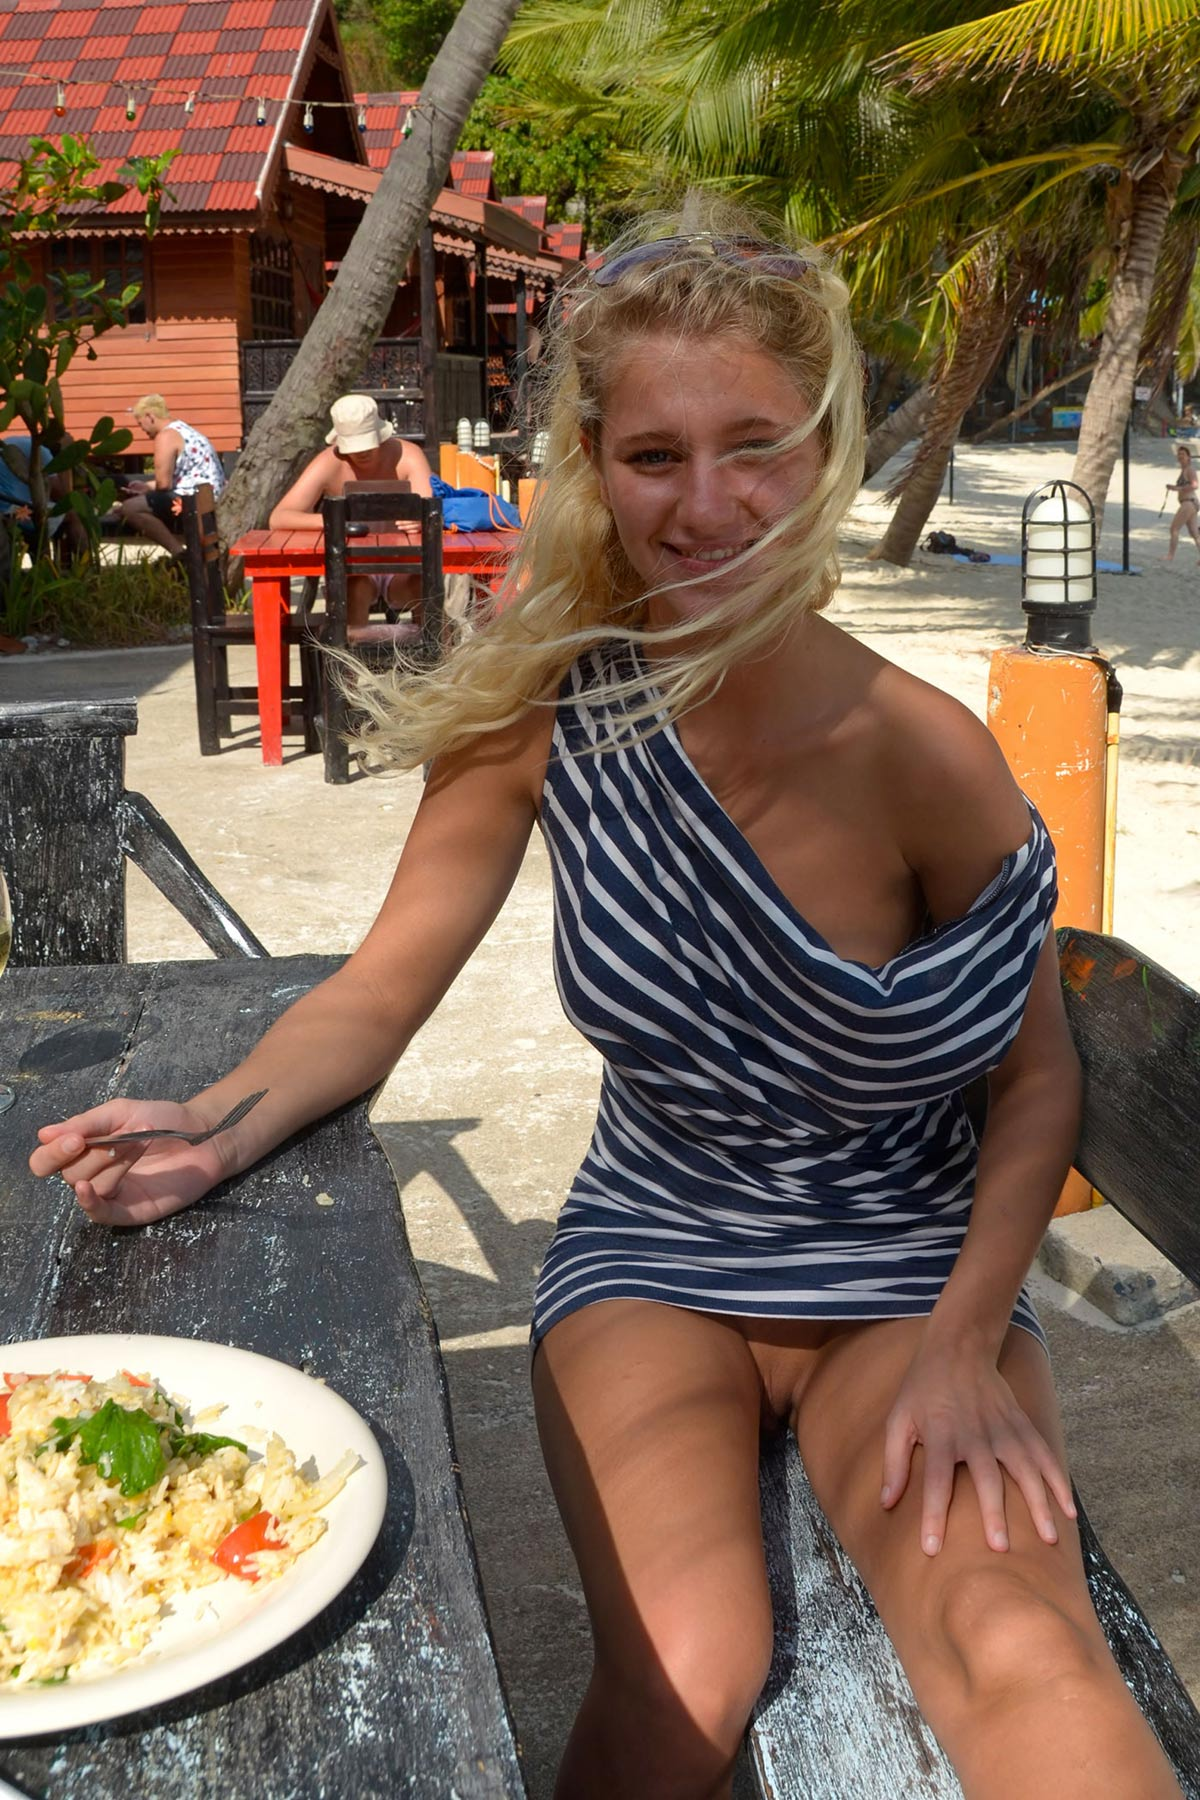 tereza-blonde-thailand-holiday-public-naked-seaside-05